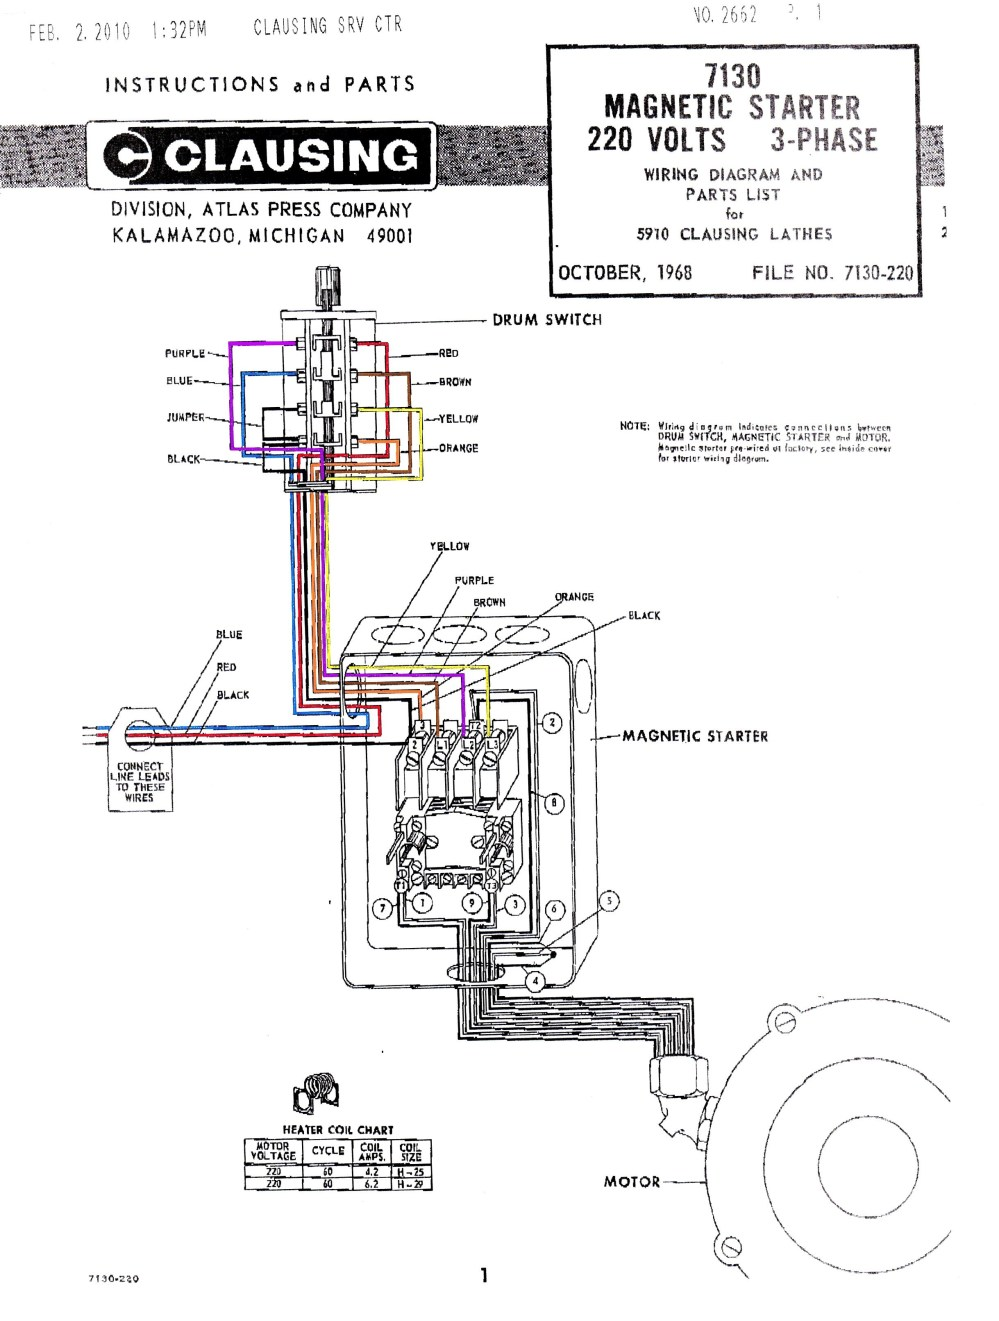 medium resolution of dry motor wiring diagram wiring diagram centre dryer motor wiring diagram frigidaire feq332 dry motor wiring diagram